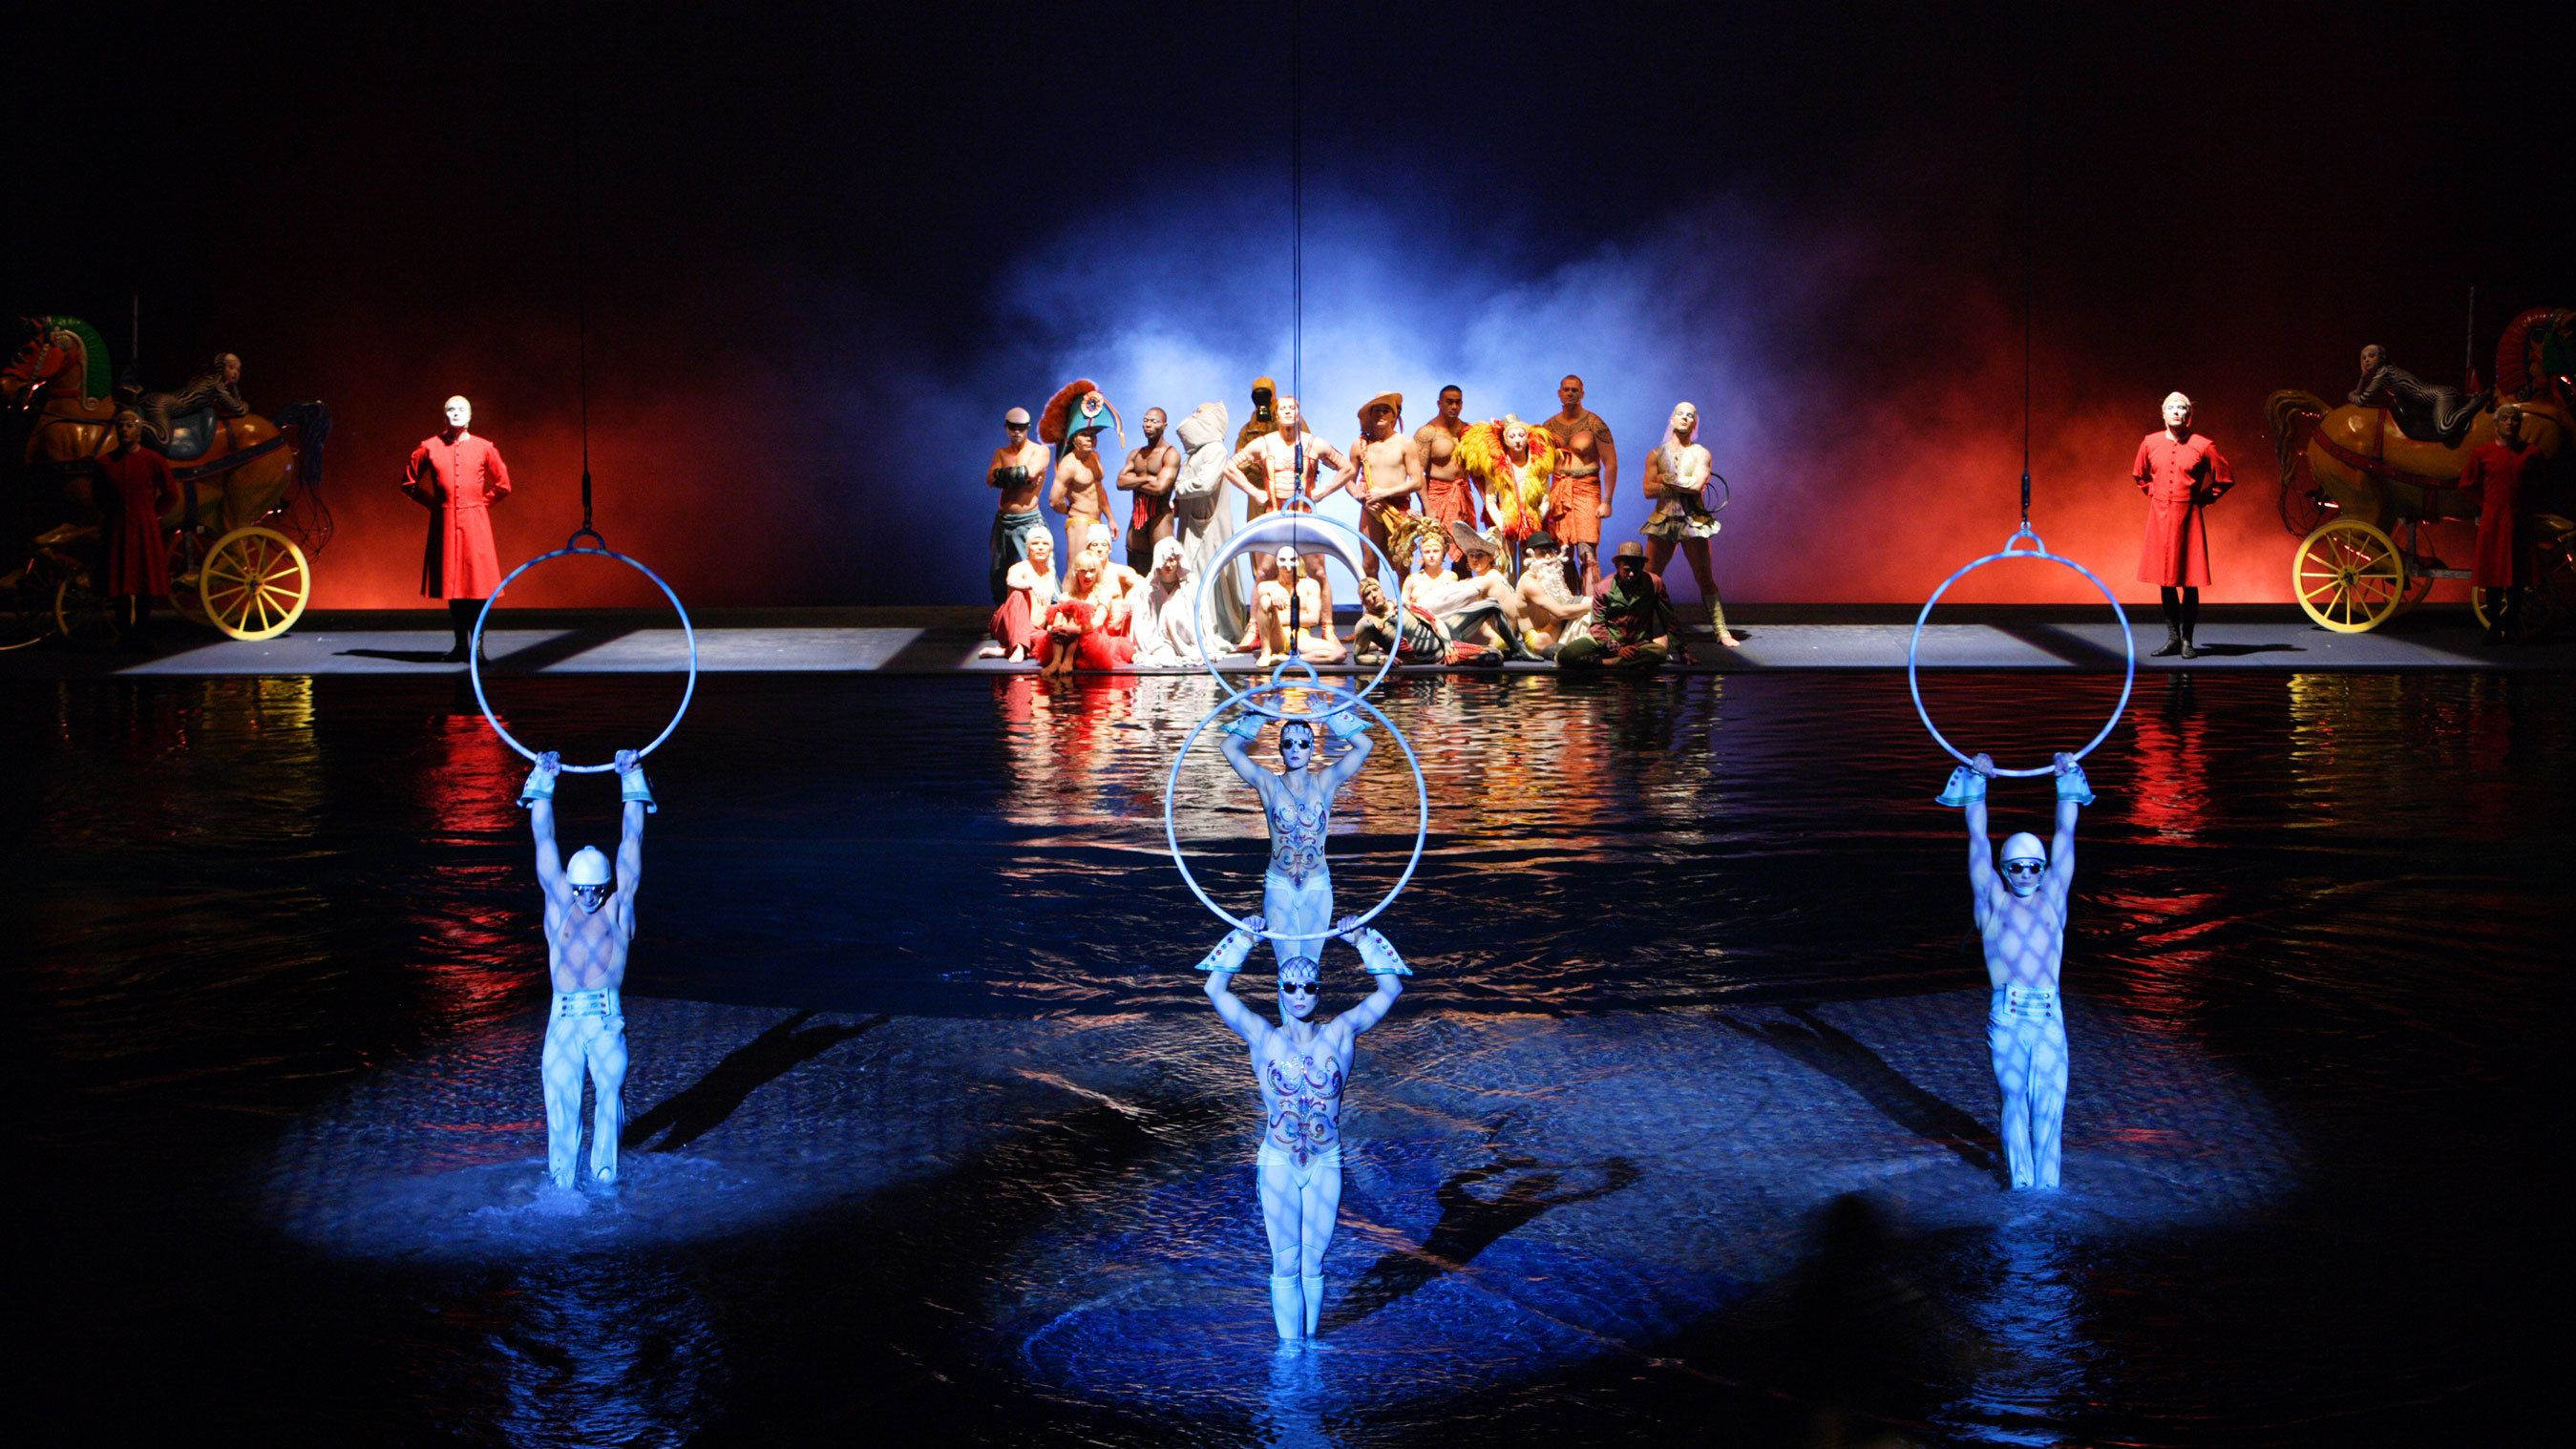 People hang from rings over pool in Cirque du Soleil O at the Bellagio in Las Vegas